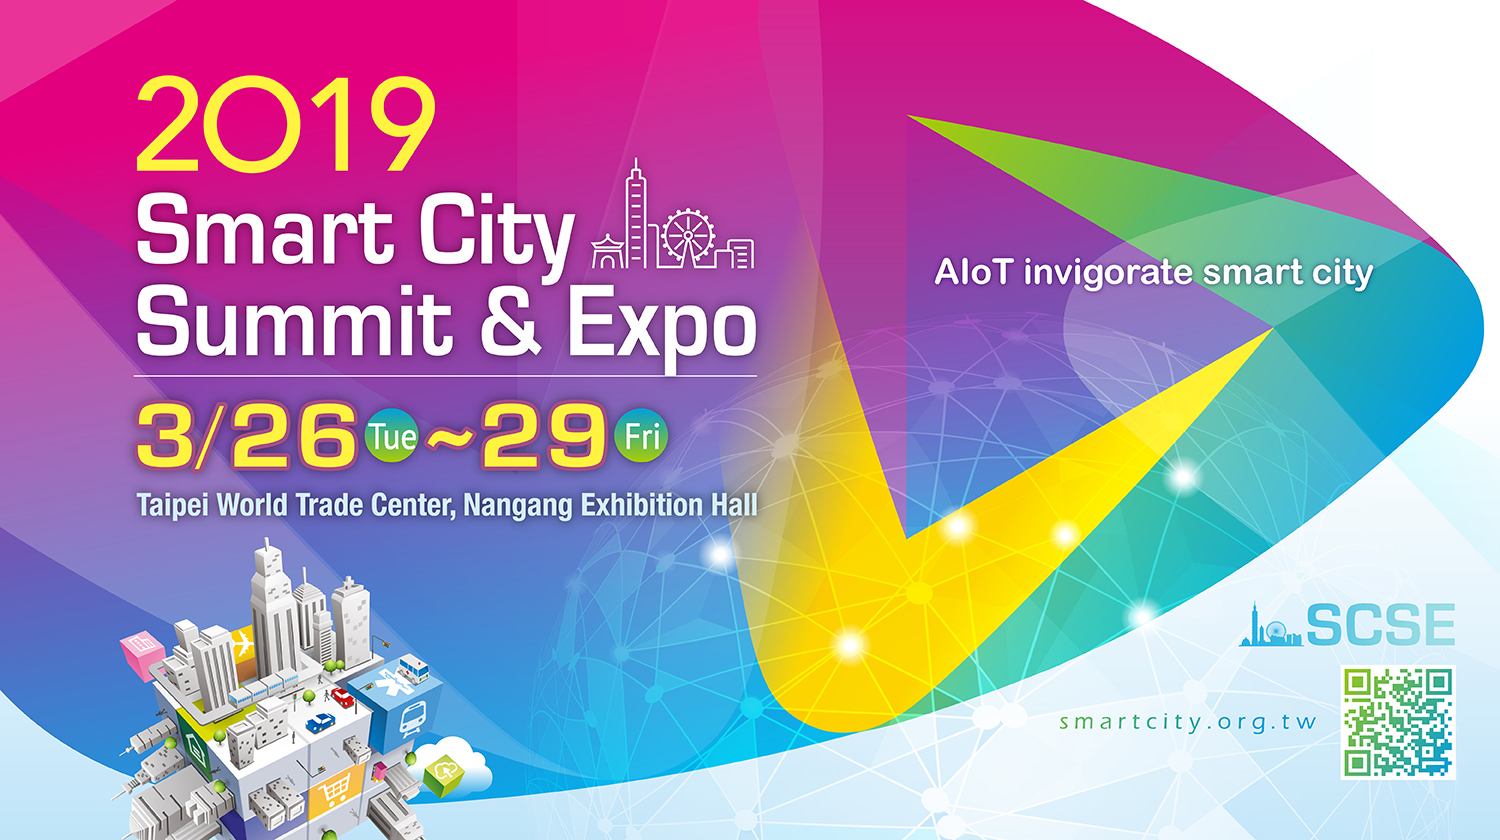 Premium Partner Page - 2019 Smart City Summit & Expo